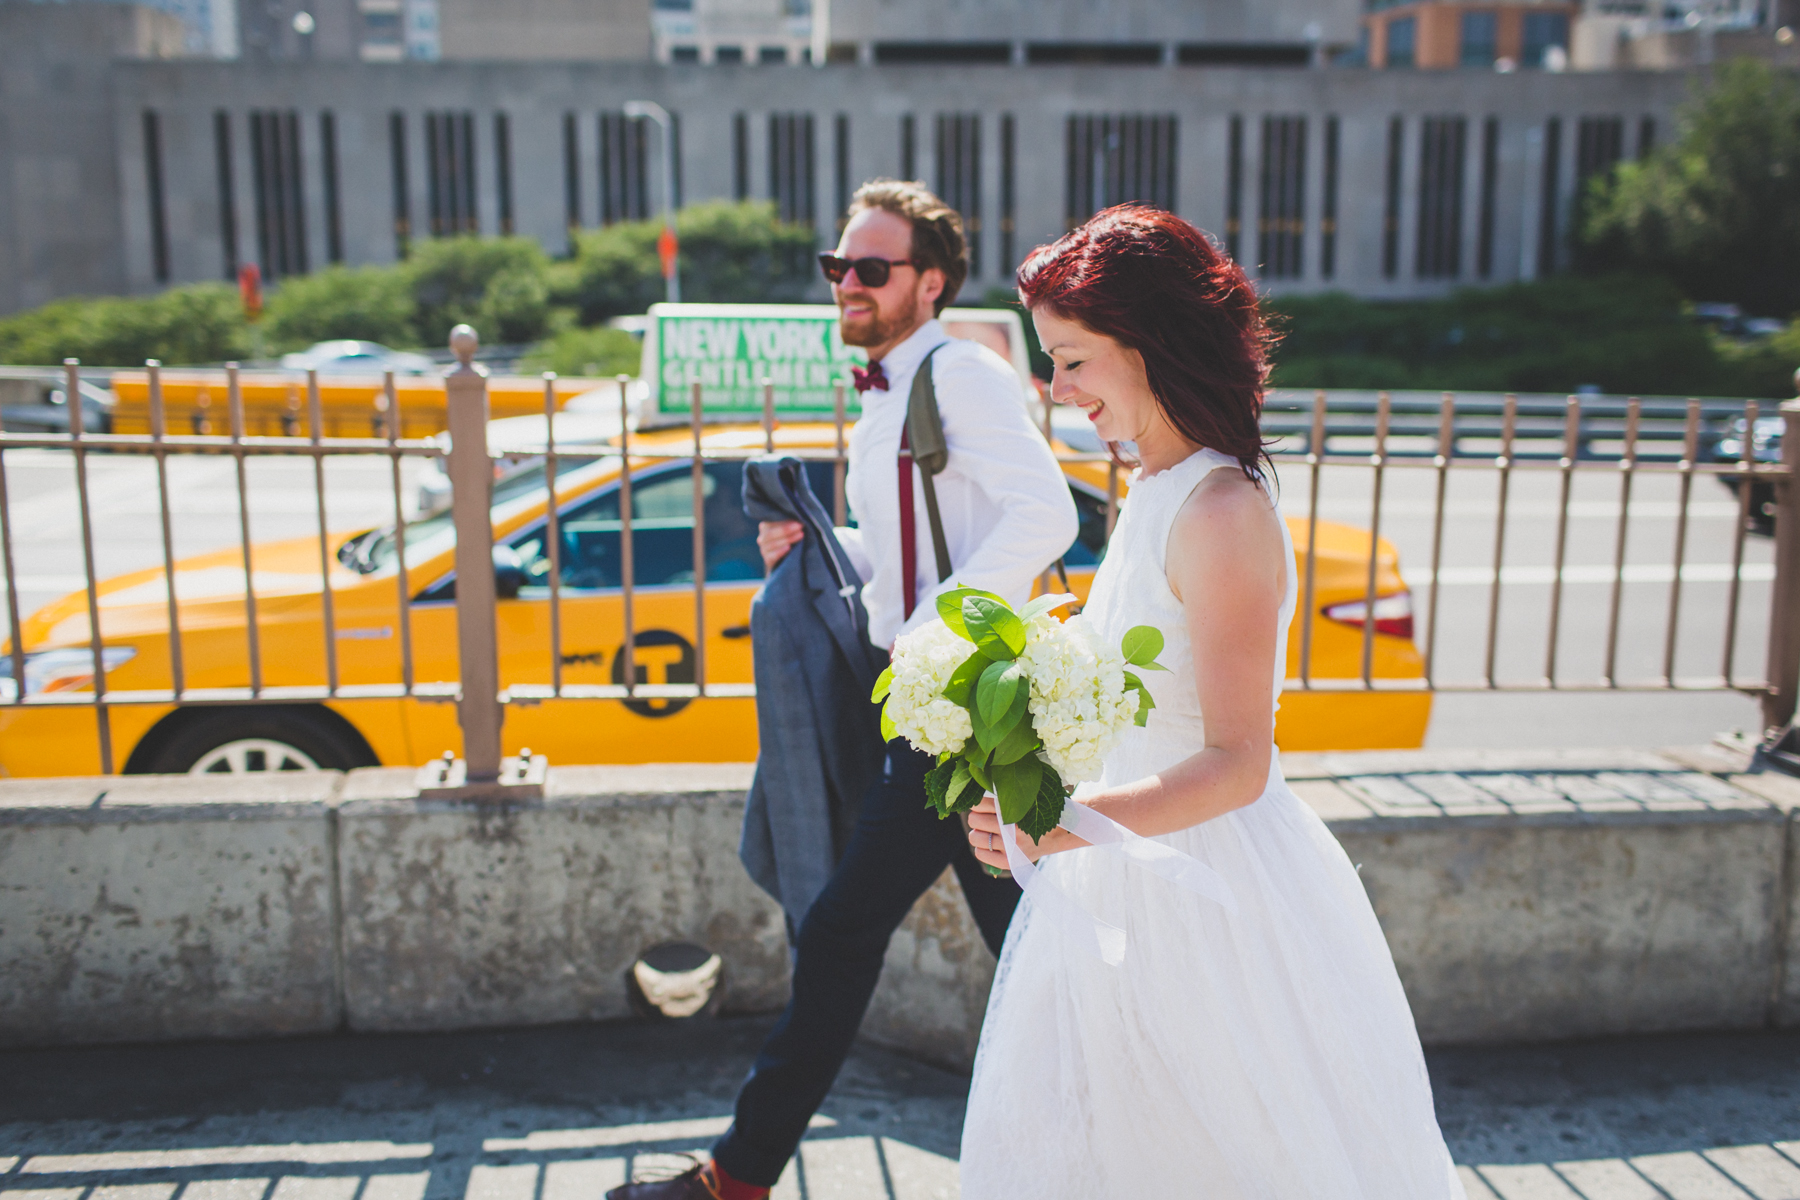 City-Hall-NYC-Elopement-New-York-Documentary-Wedding-Photographer-Elvira-Kalviste-28.jpg